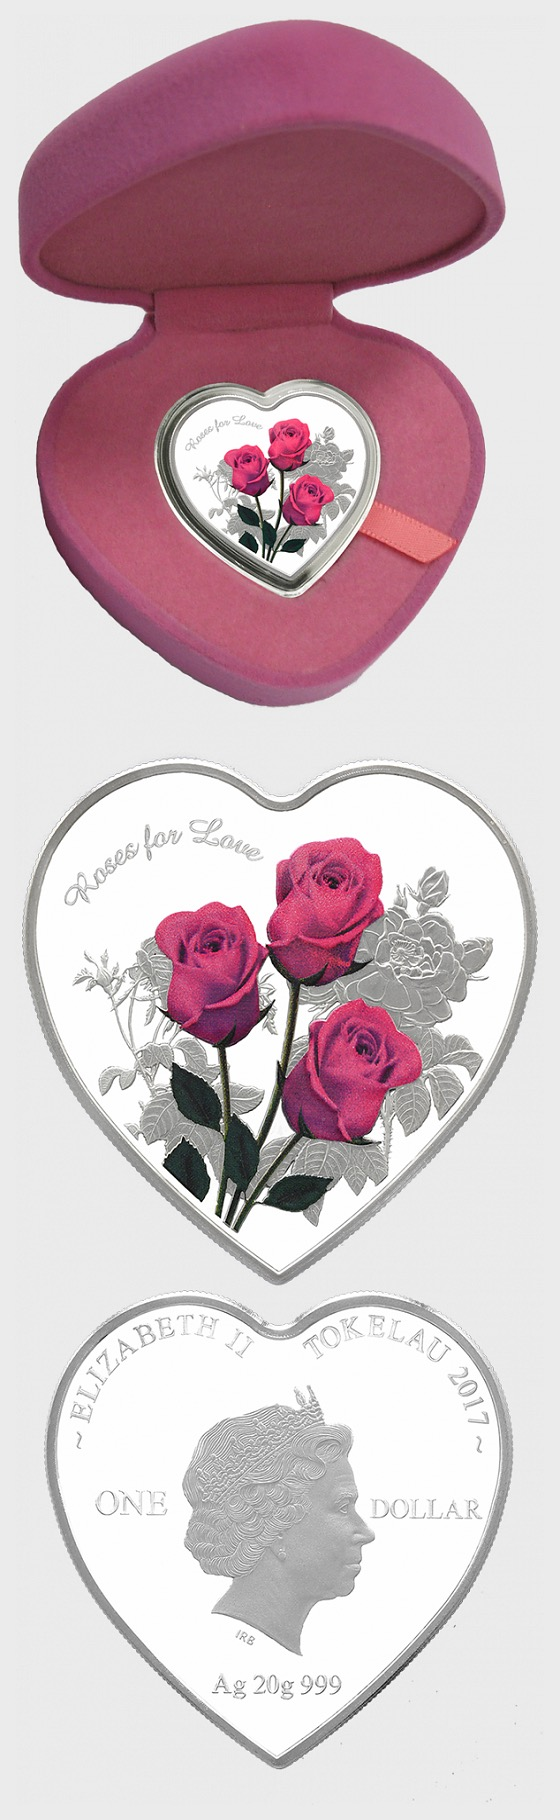 Roses For Love Heart-Shaped Silver Tokelau Coin - Silver Coin